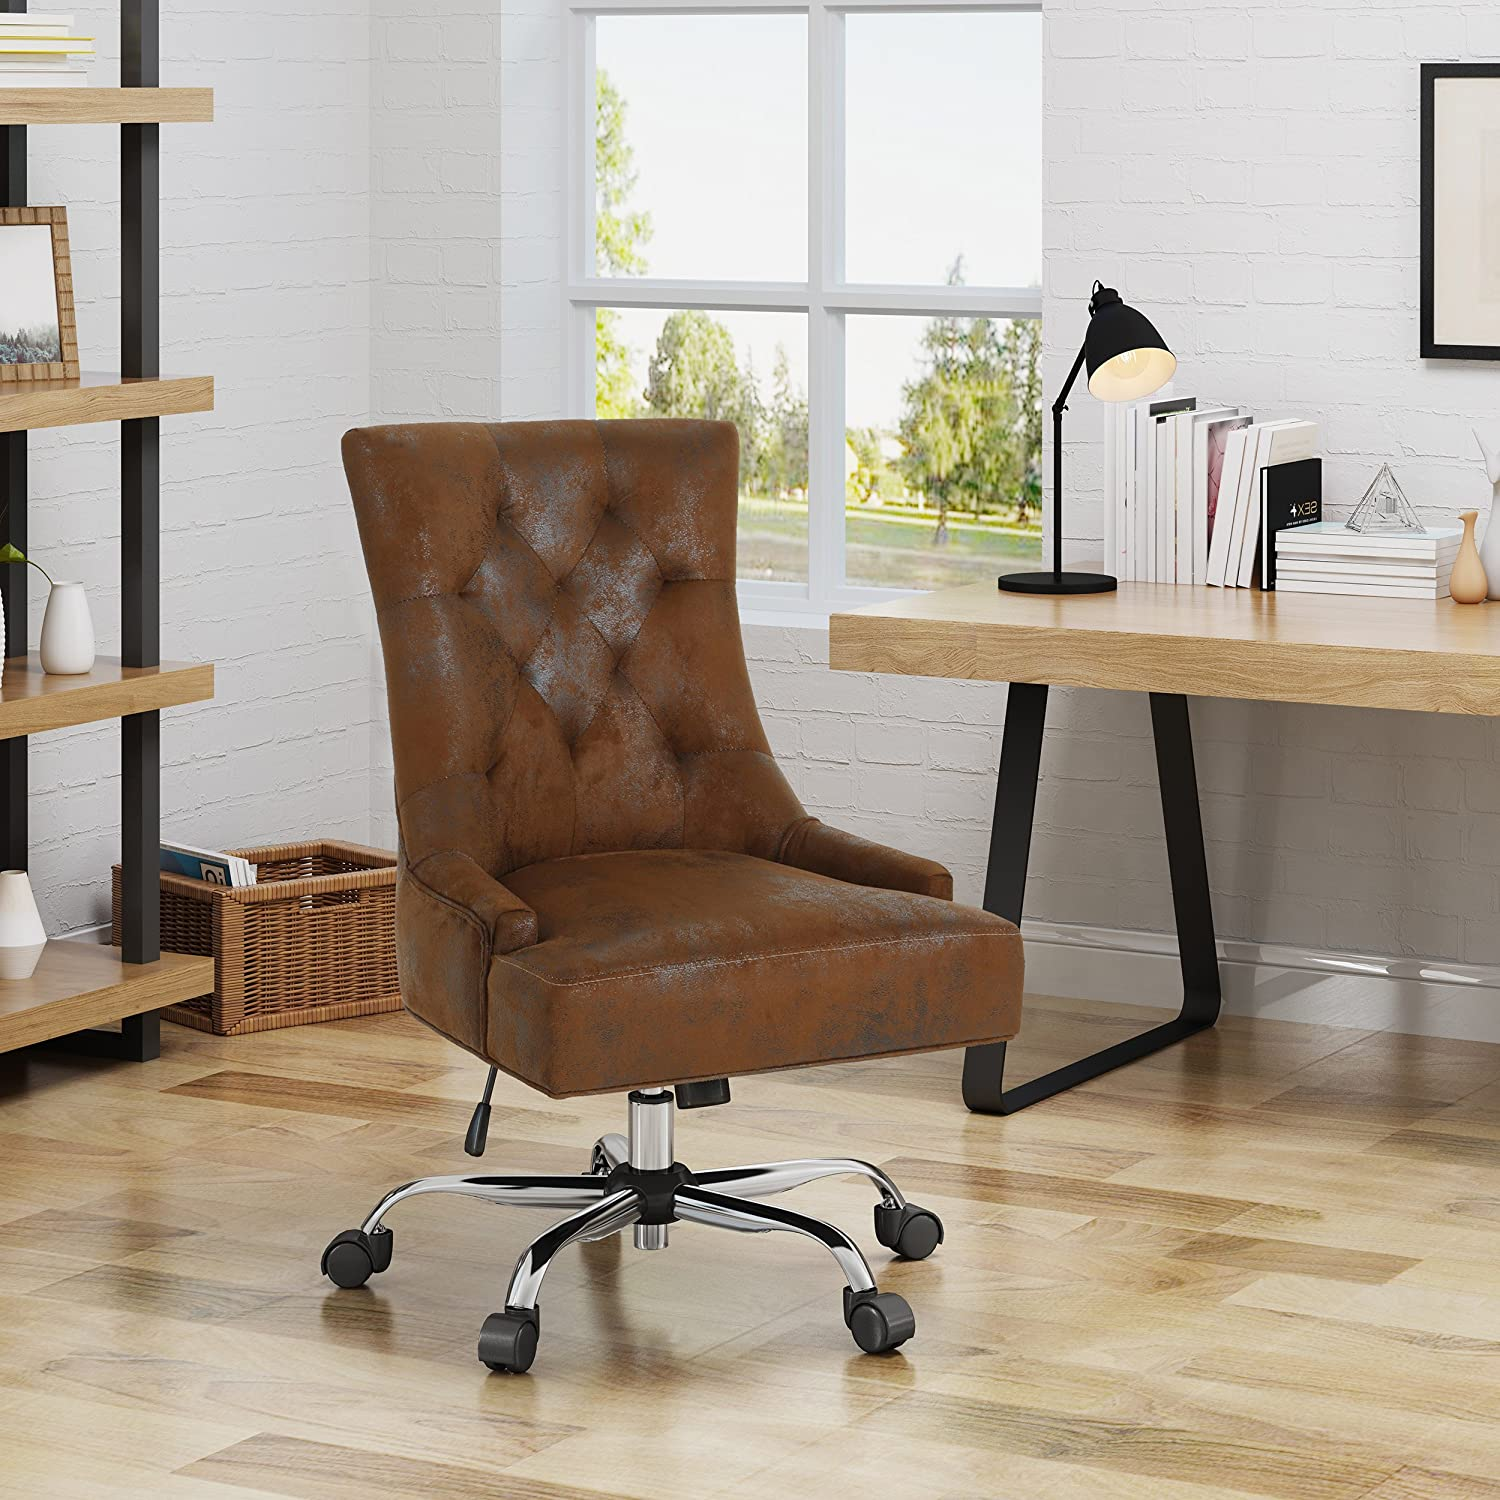 Christopher Knight Home 304966 Bagnold Desk Chair, Brown + Chrome